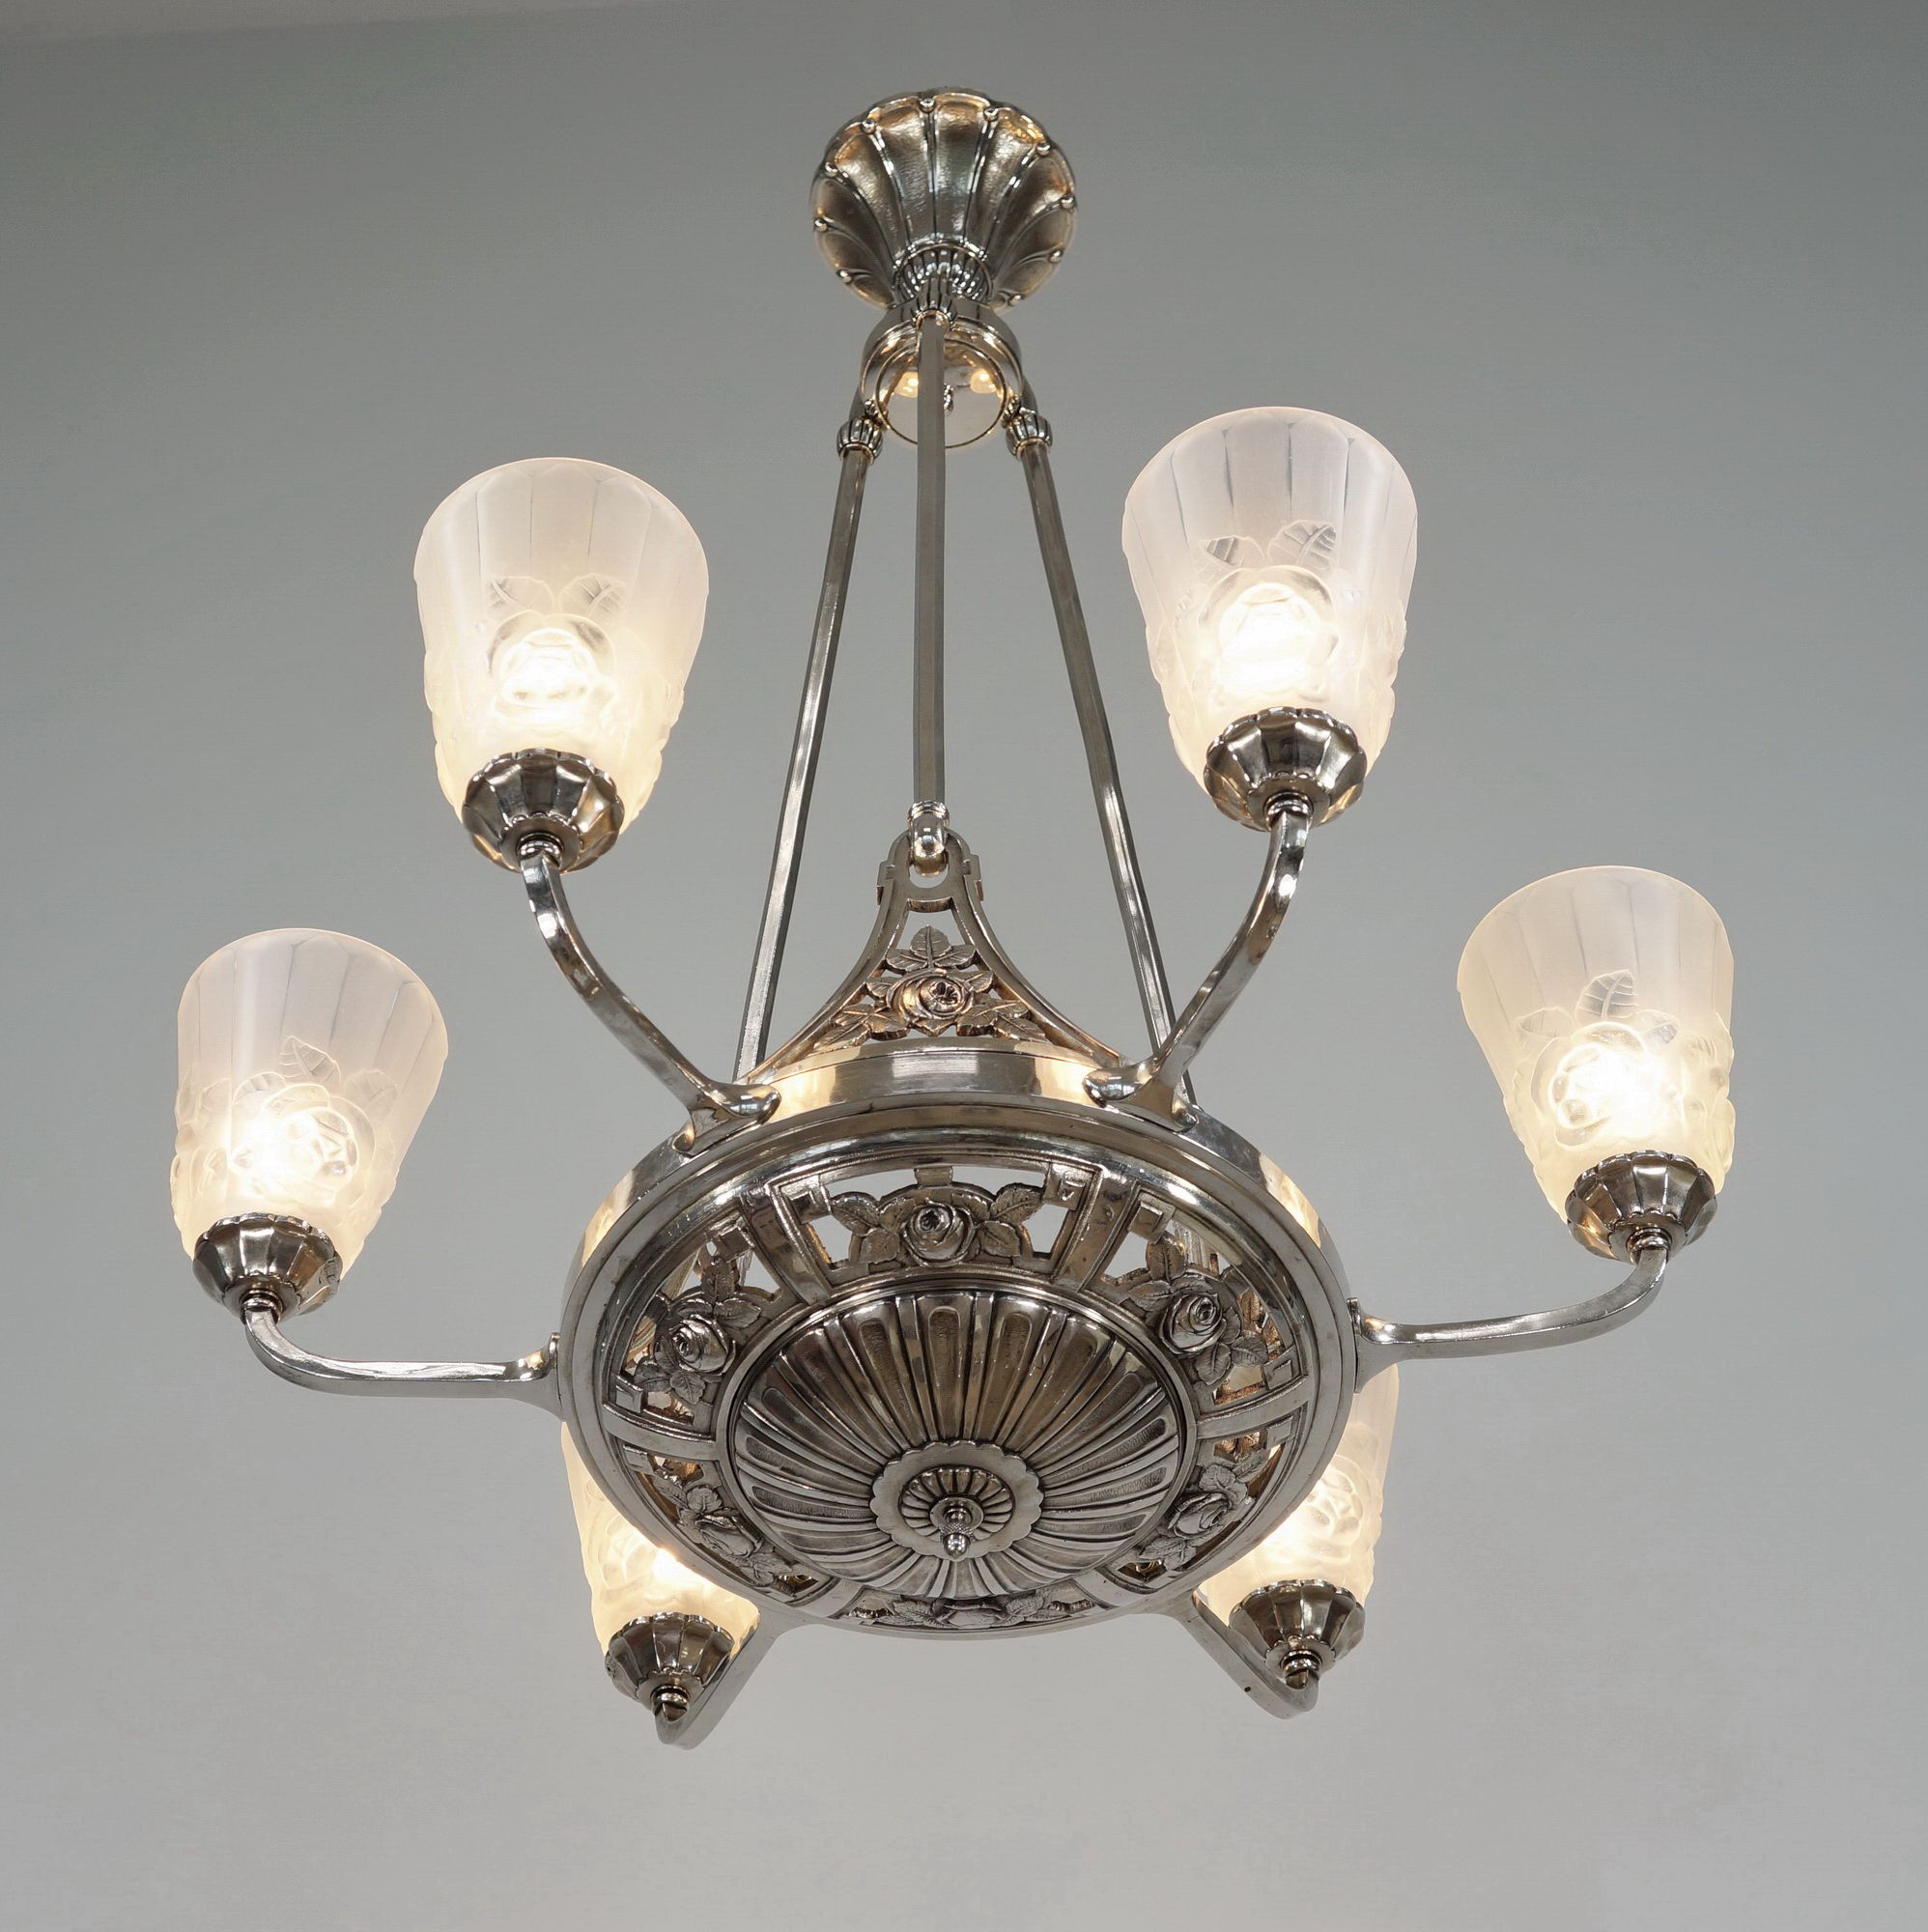 Ebay paravas french art deco chandelier by degu lamparas ebay paravas french art deco chandelier by degu arubaitofo Images